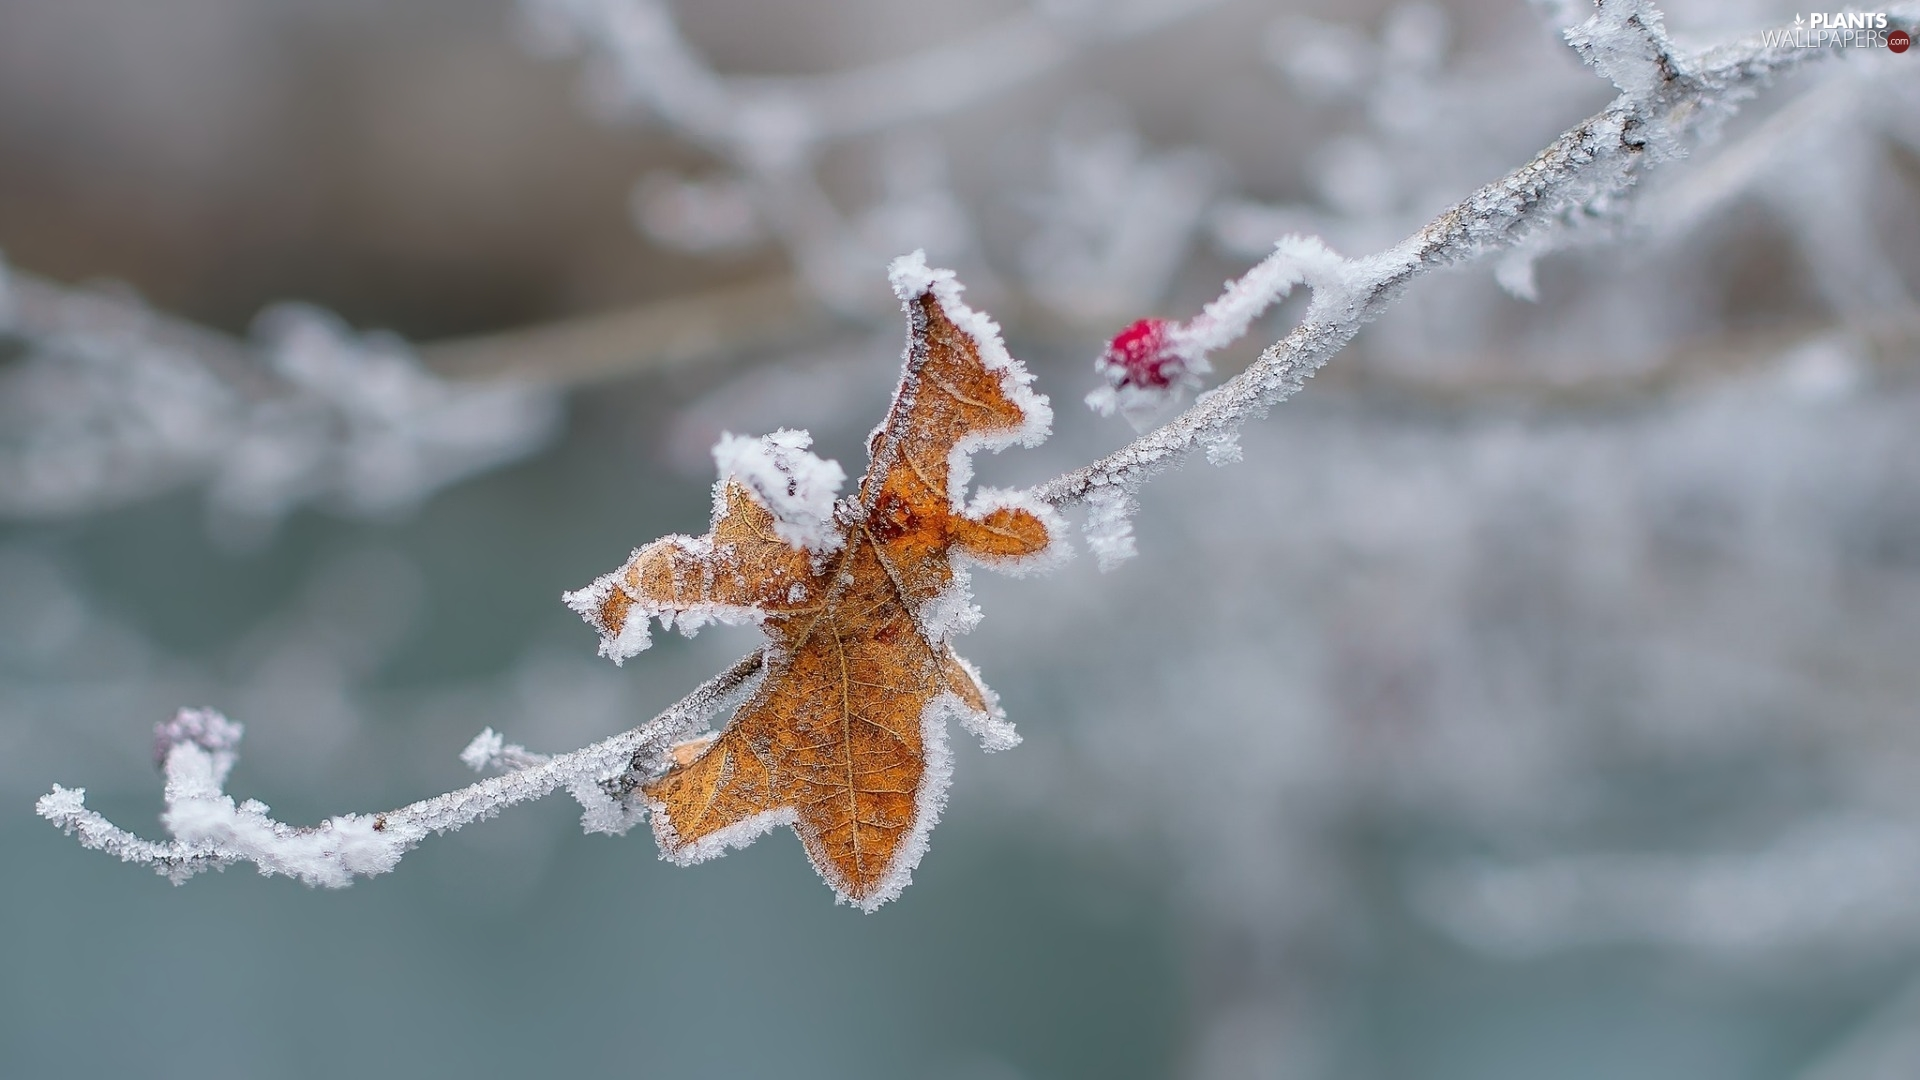 twig, berry, White frost, leaf